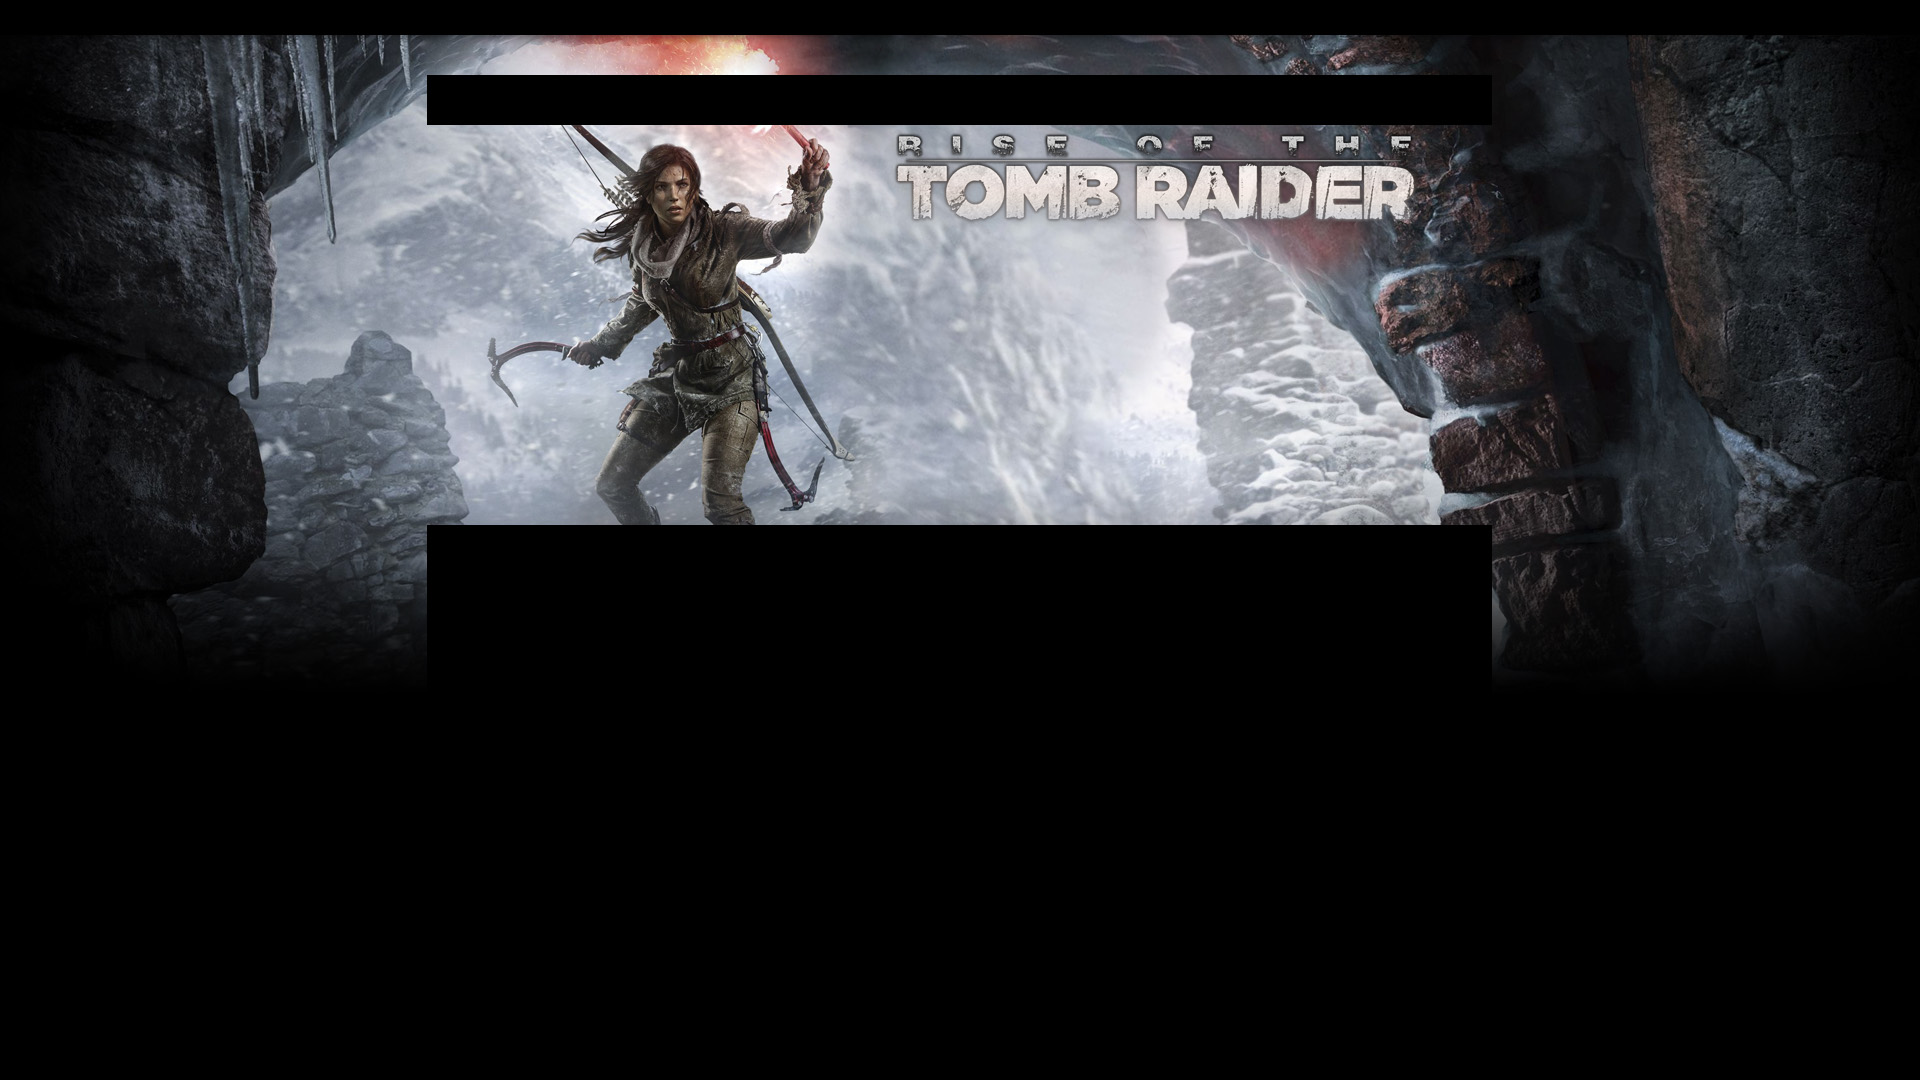 Rise of the Tomb Raider [PC] video game